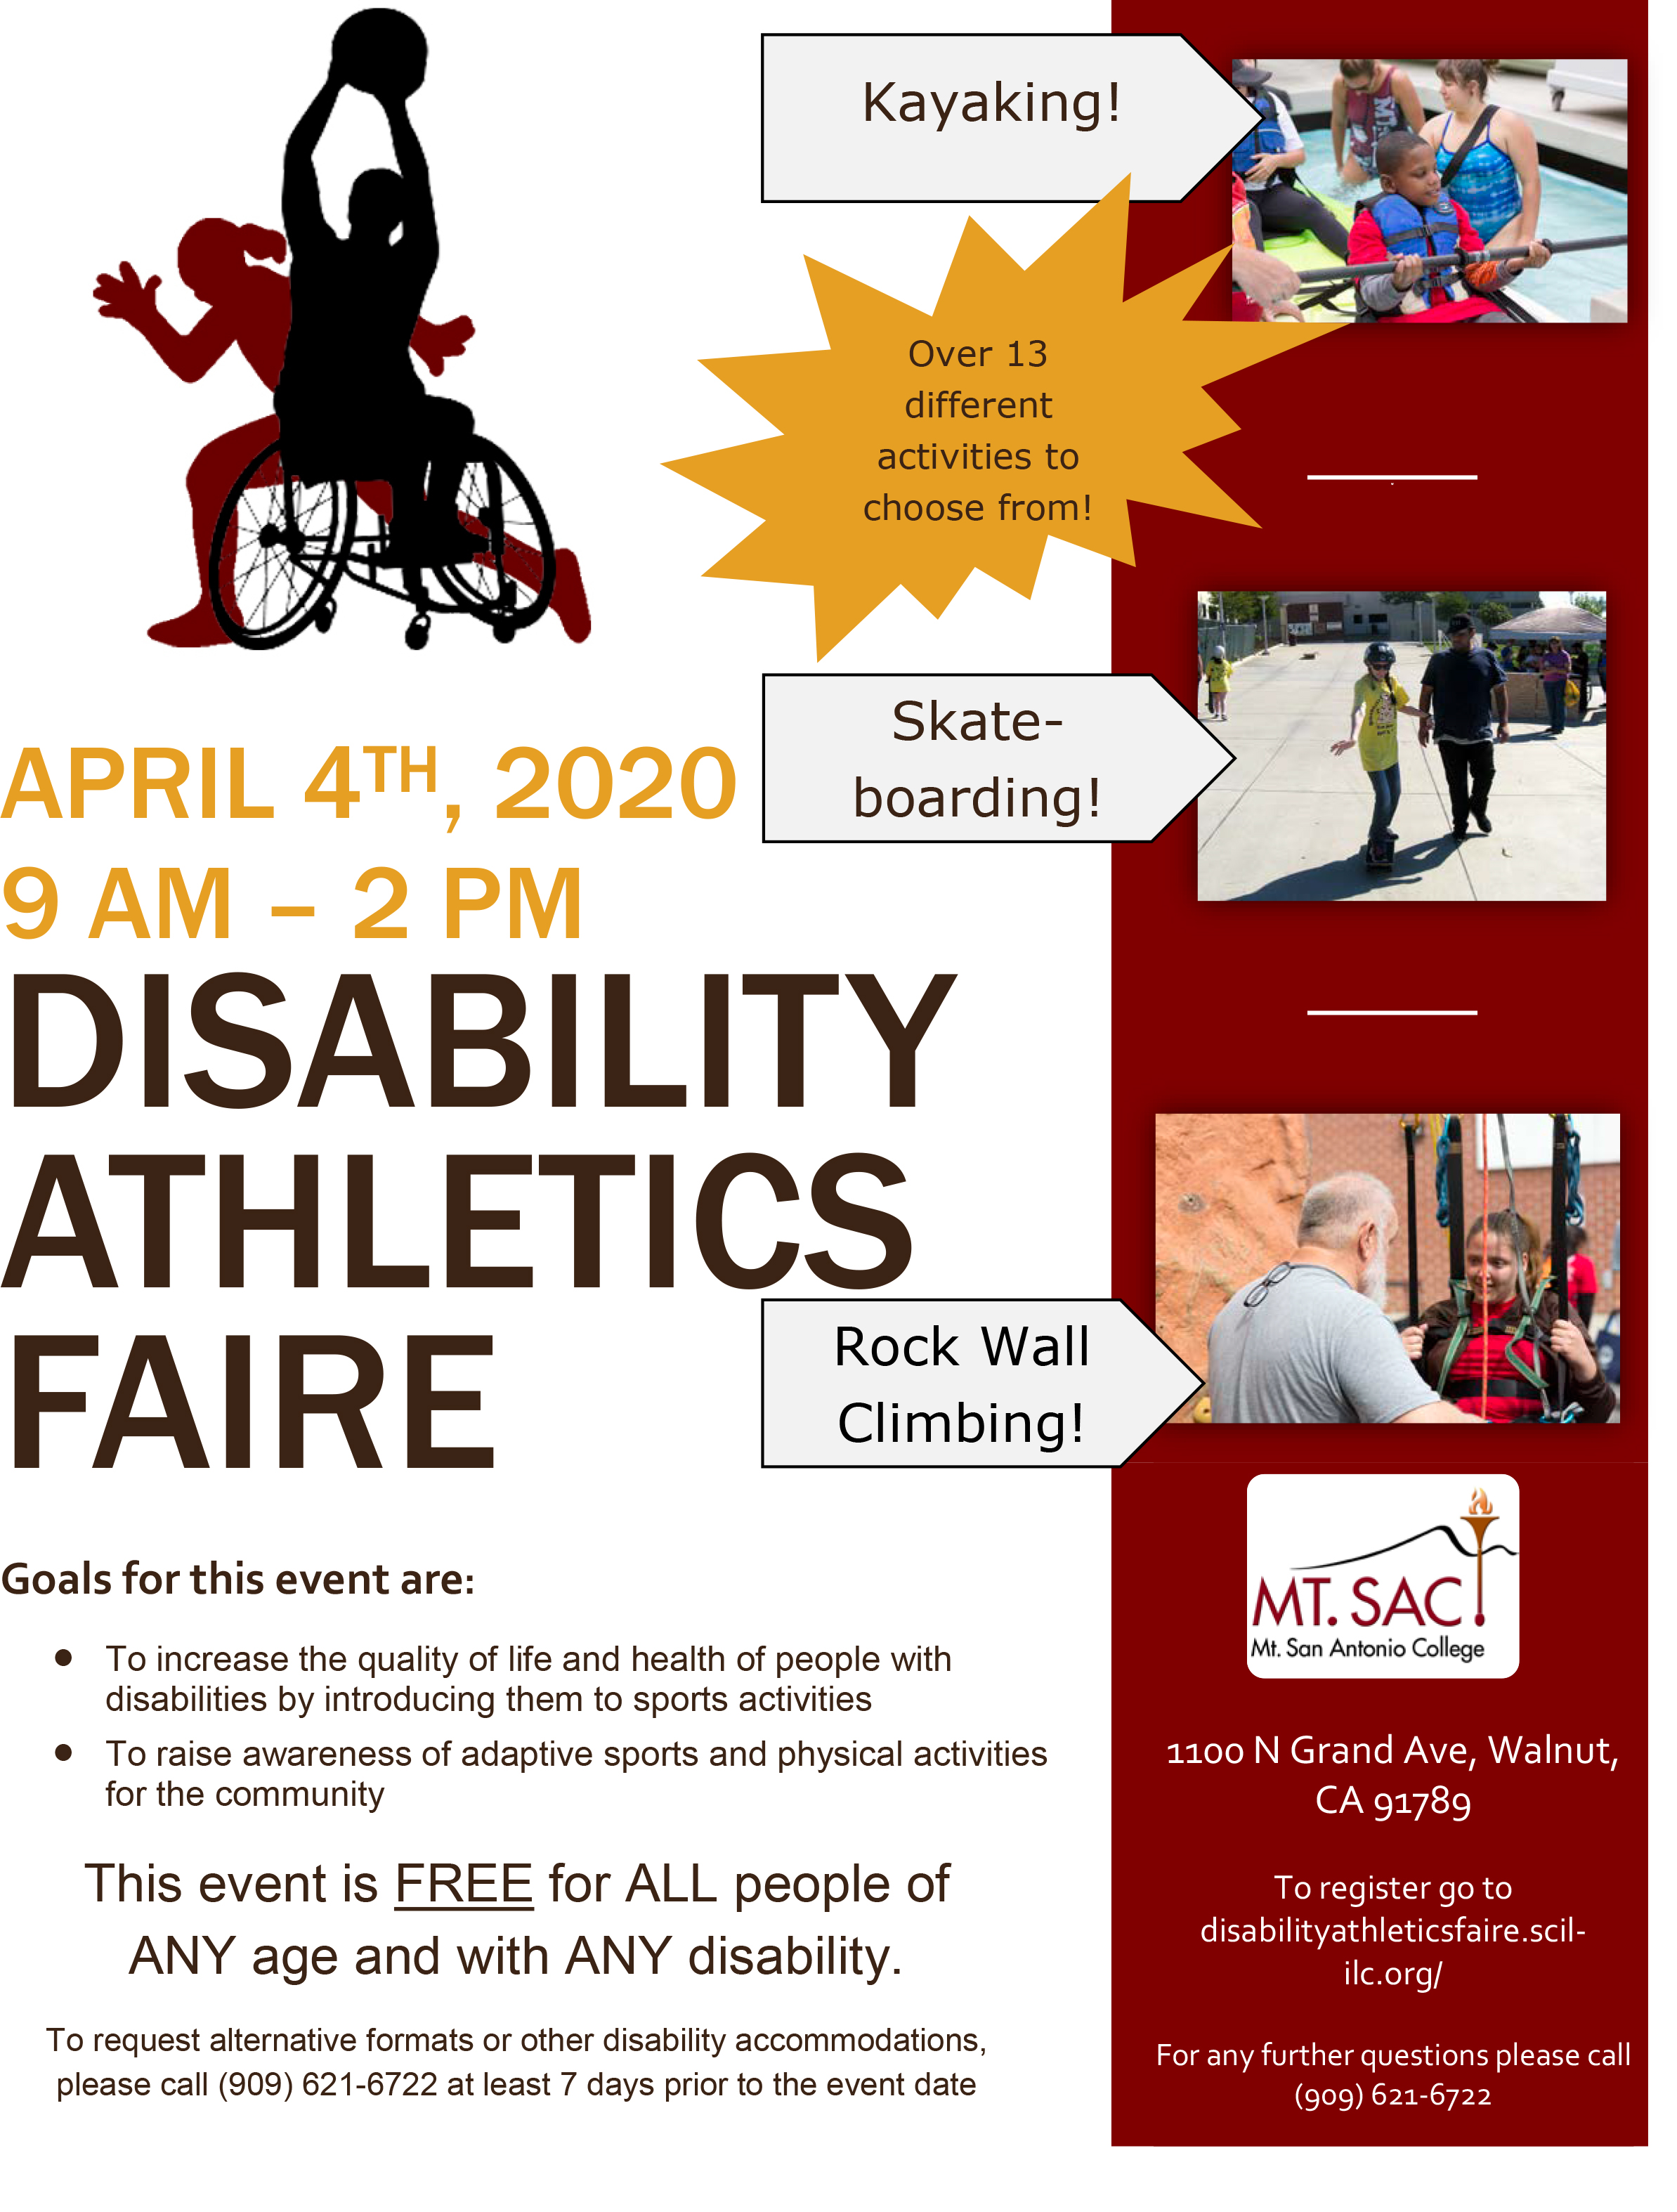 The 5th Annual Disability Athletics Faire